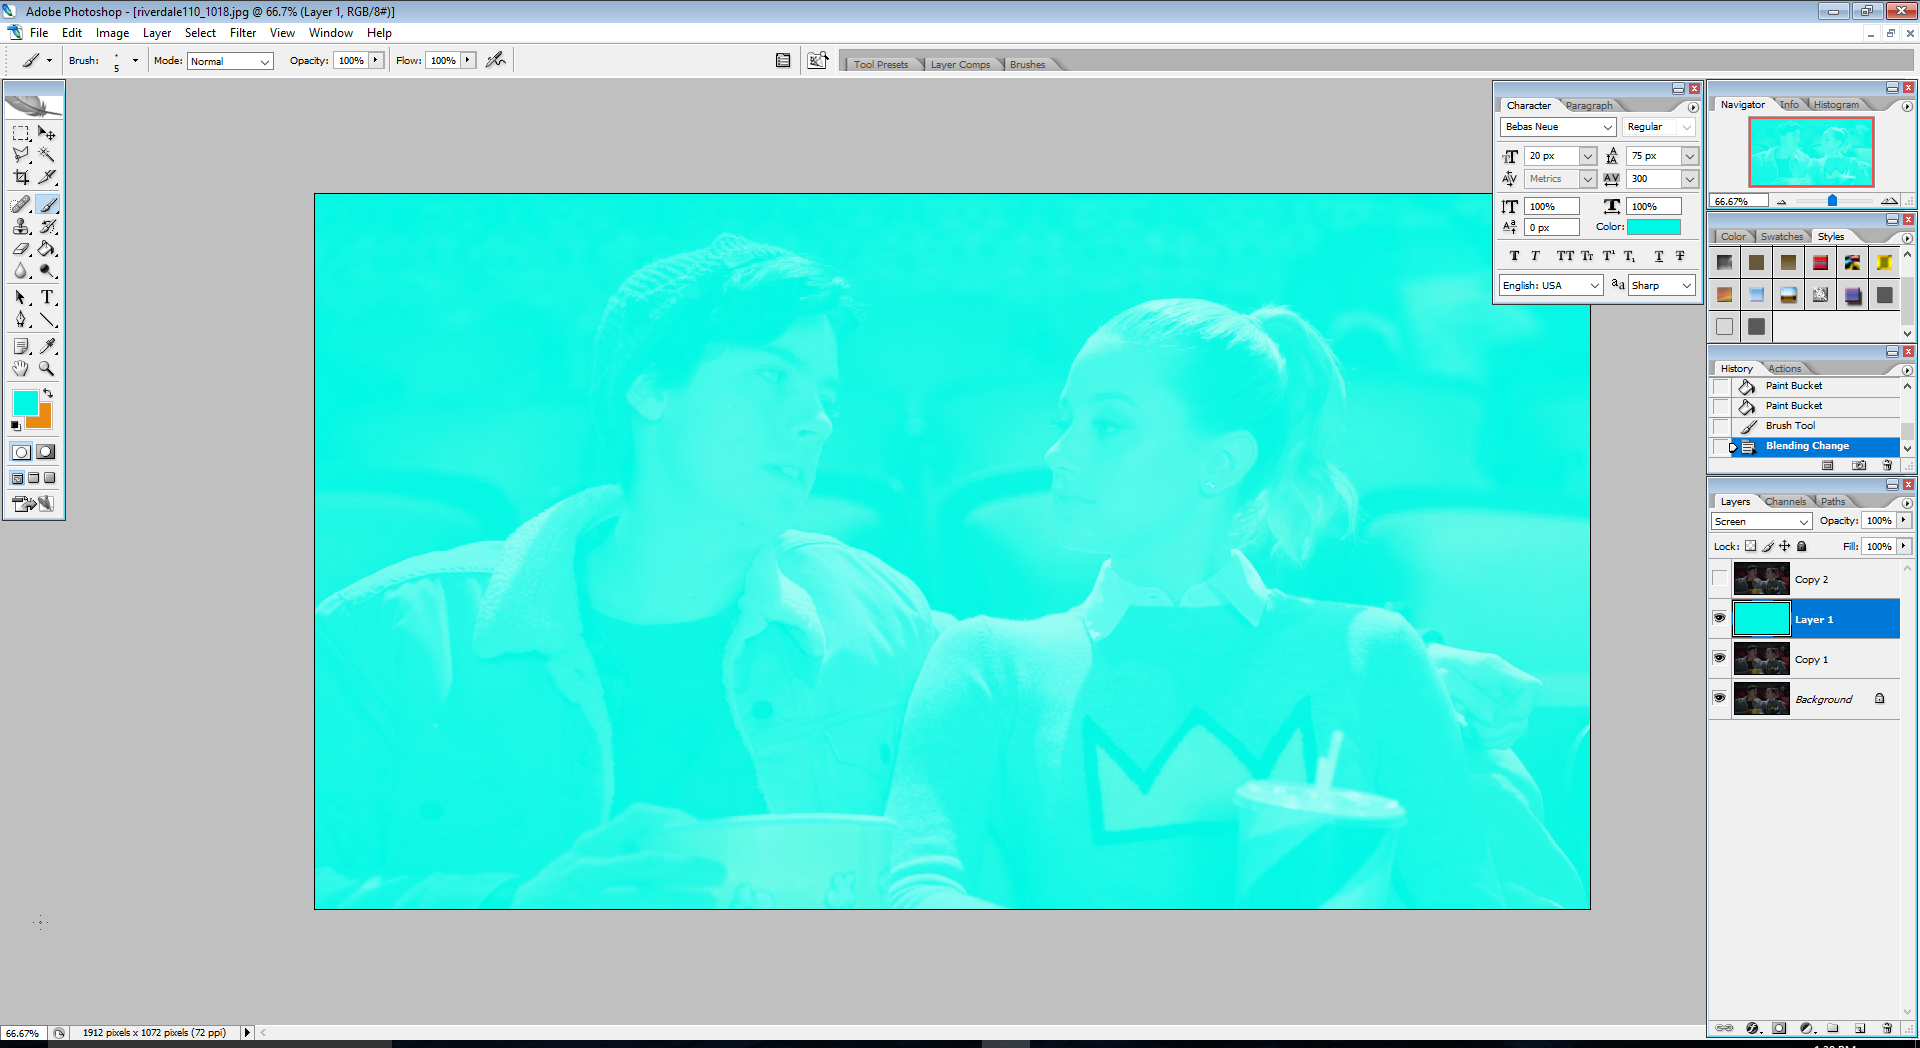 create a new layer above Copy 1; fill it with a neon blue (preferably#00f7e3); set the blending mode to ScreenCopy 2 is temporarily hidden in this image